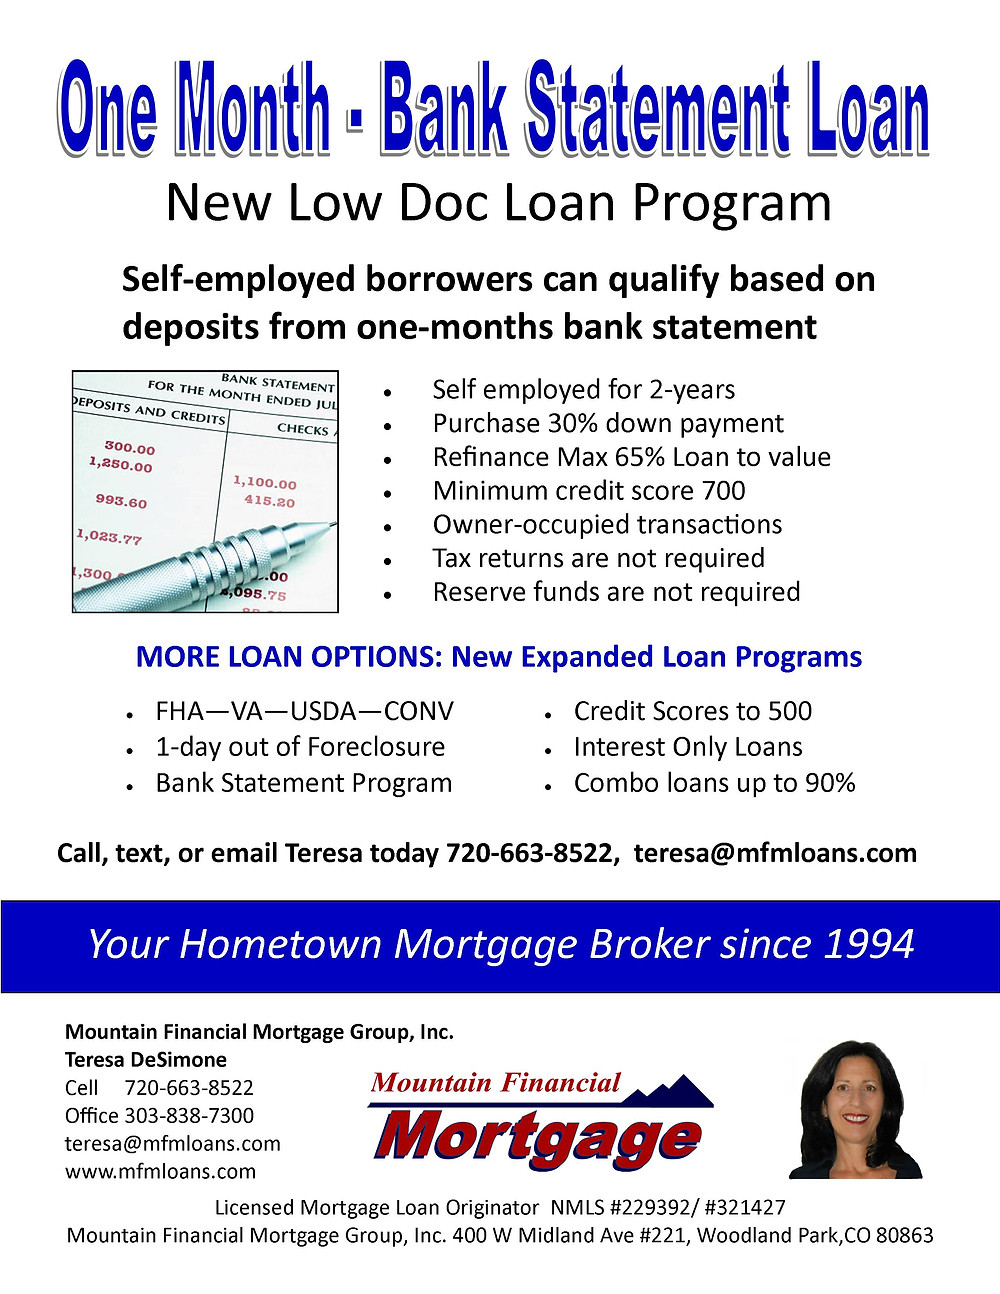 New low doc loan program for the self-employed borrower